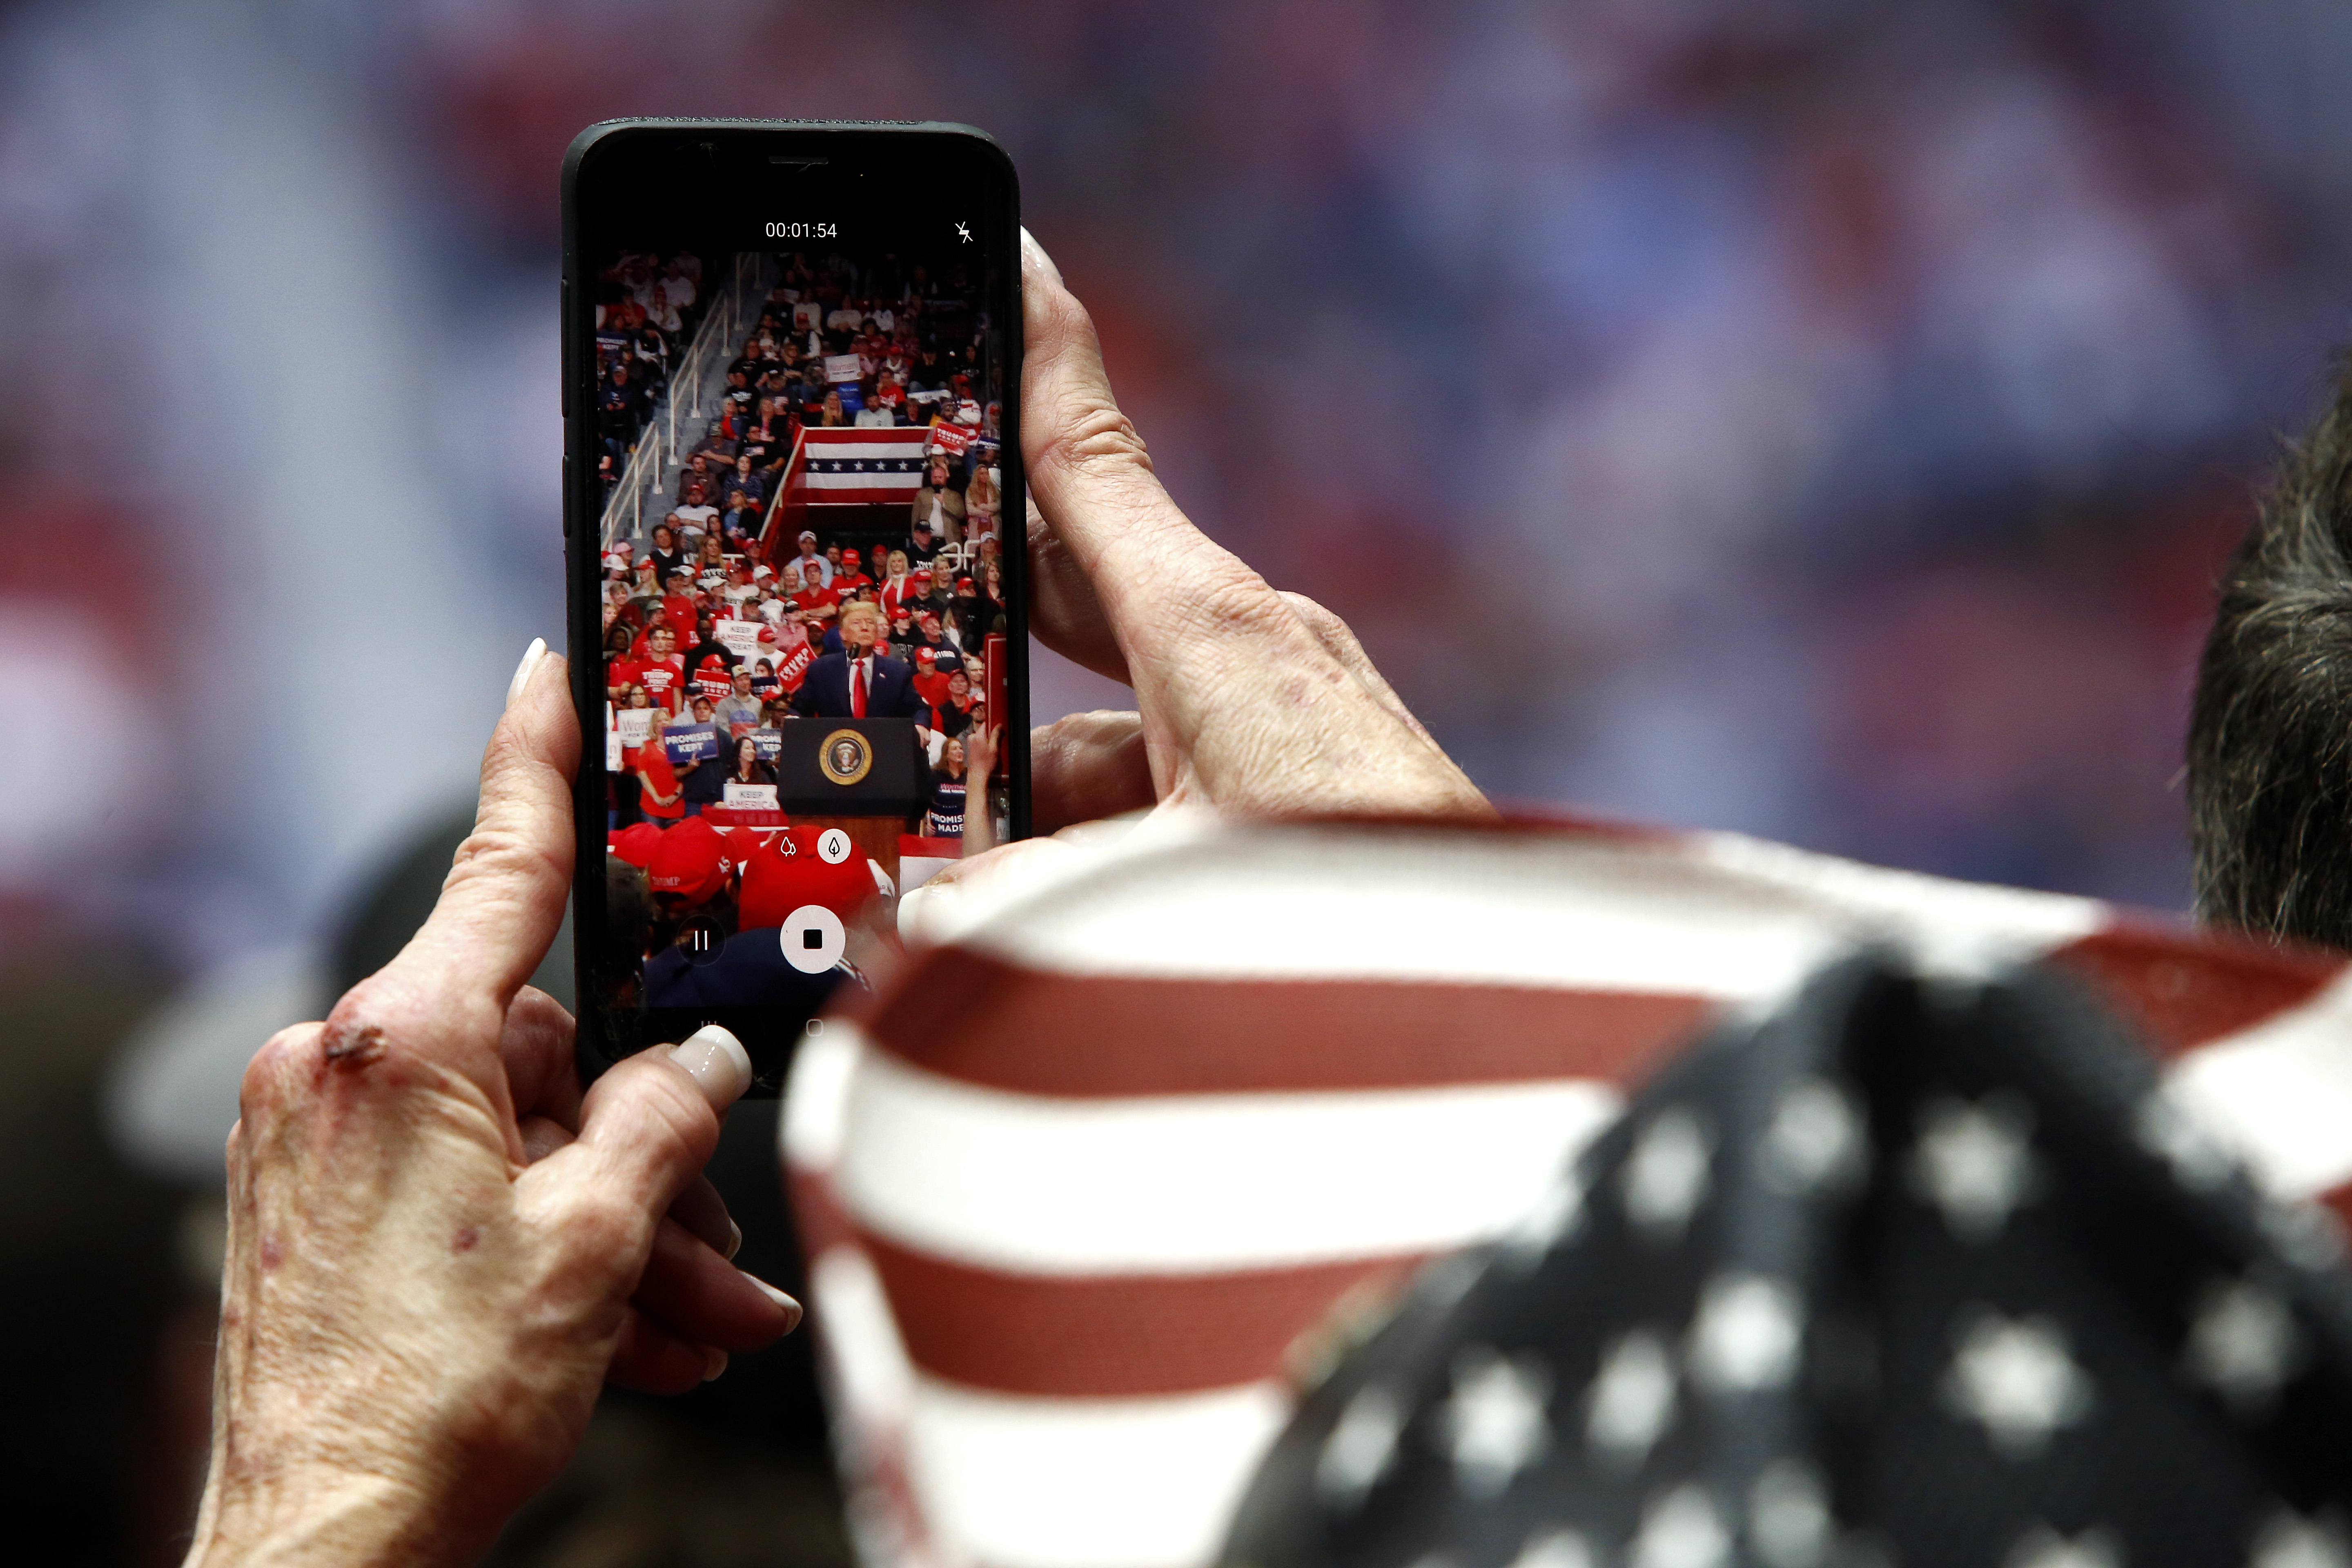 CHARLOTTE, NC - MARCH 2: A supporter films U.S. President Donald Trump as he speaks during a rally on March 2, 2020 in Charlotte, North Carolina. Trump was campaigning ahead of Super Tuesday. (Photo by Brian Blanco/Getty Images)